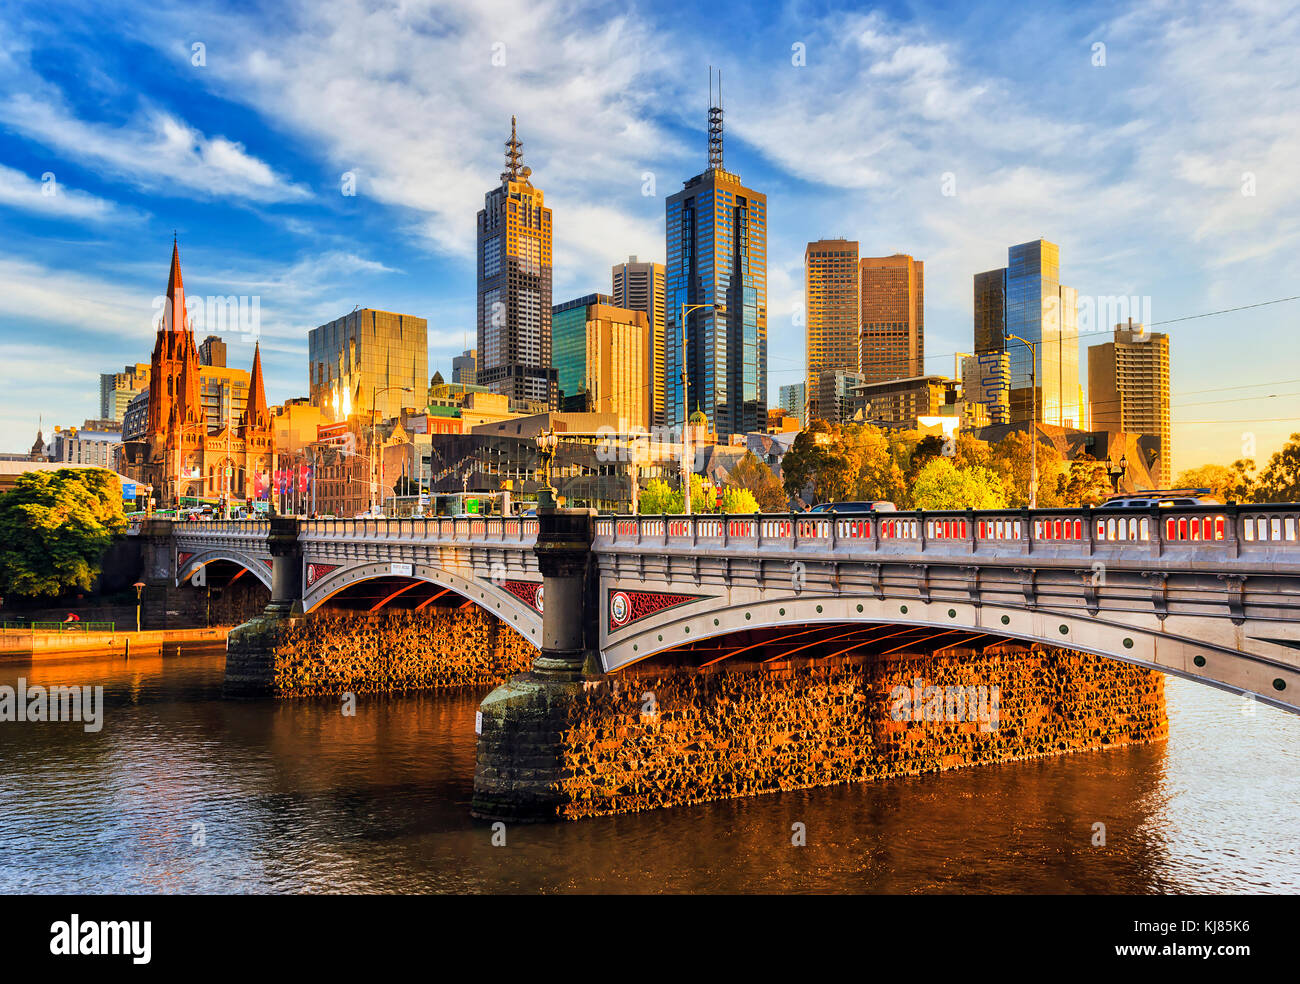 Warm morning light on high-rise towers in Melbourne CBD above Princes bridge across Yarra river. Stock Photo